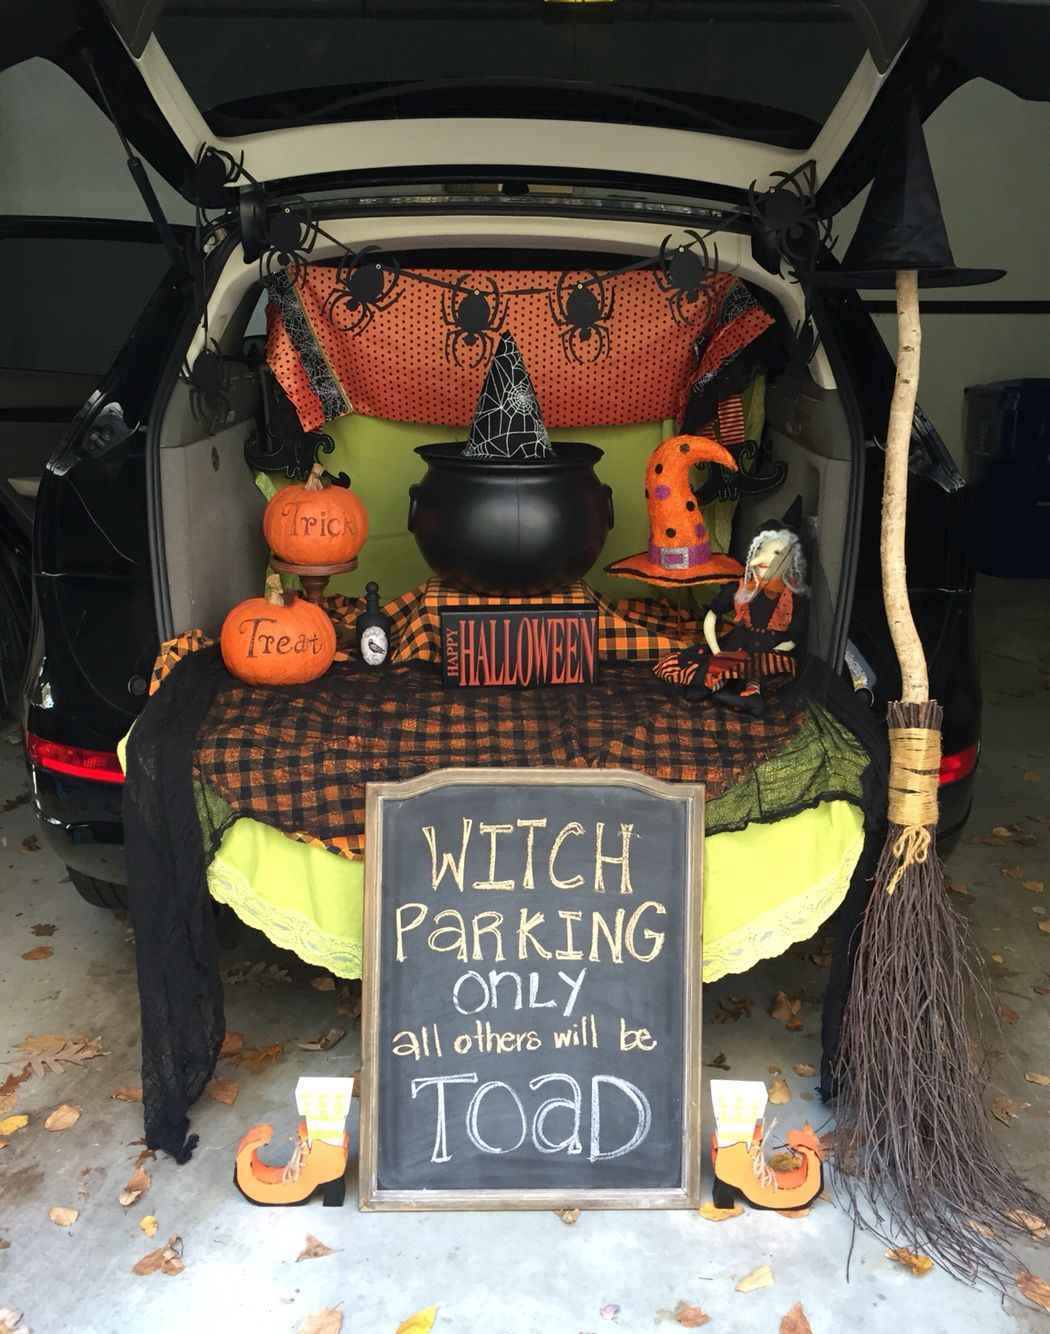 16 Trunk or Treat Decorating Ideas - Futurist Architecture & Witches hang out. Trunk or treat.   trunk or treat   Pinterest ...